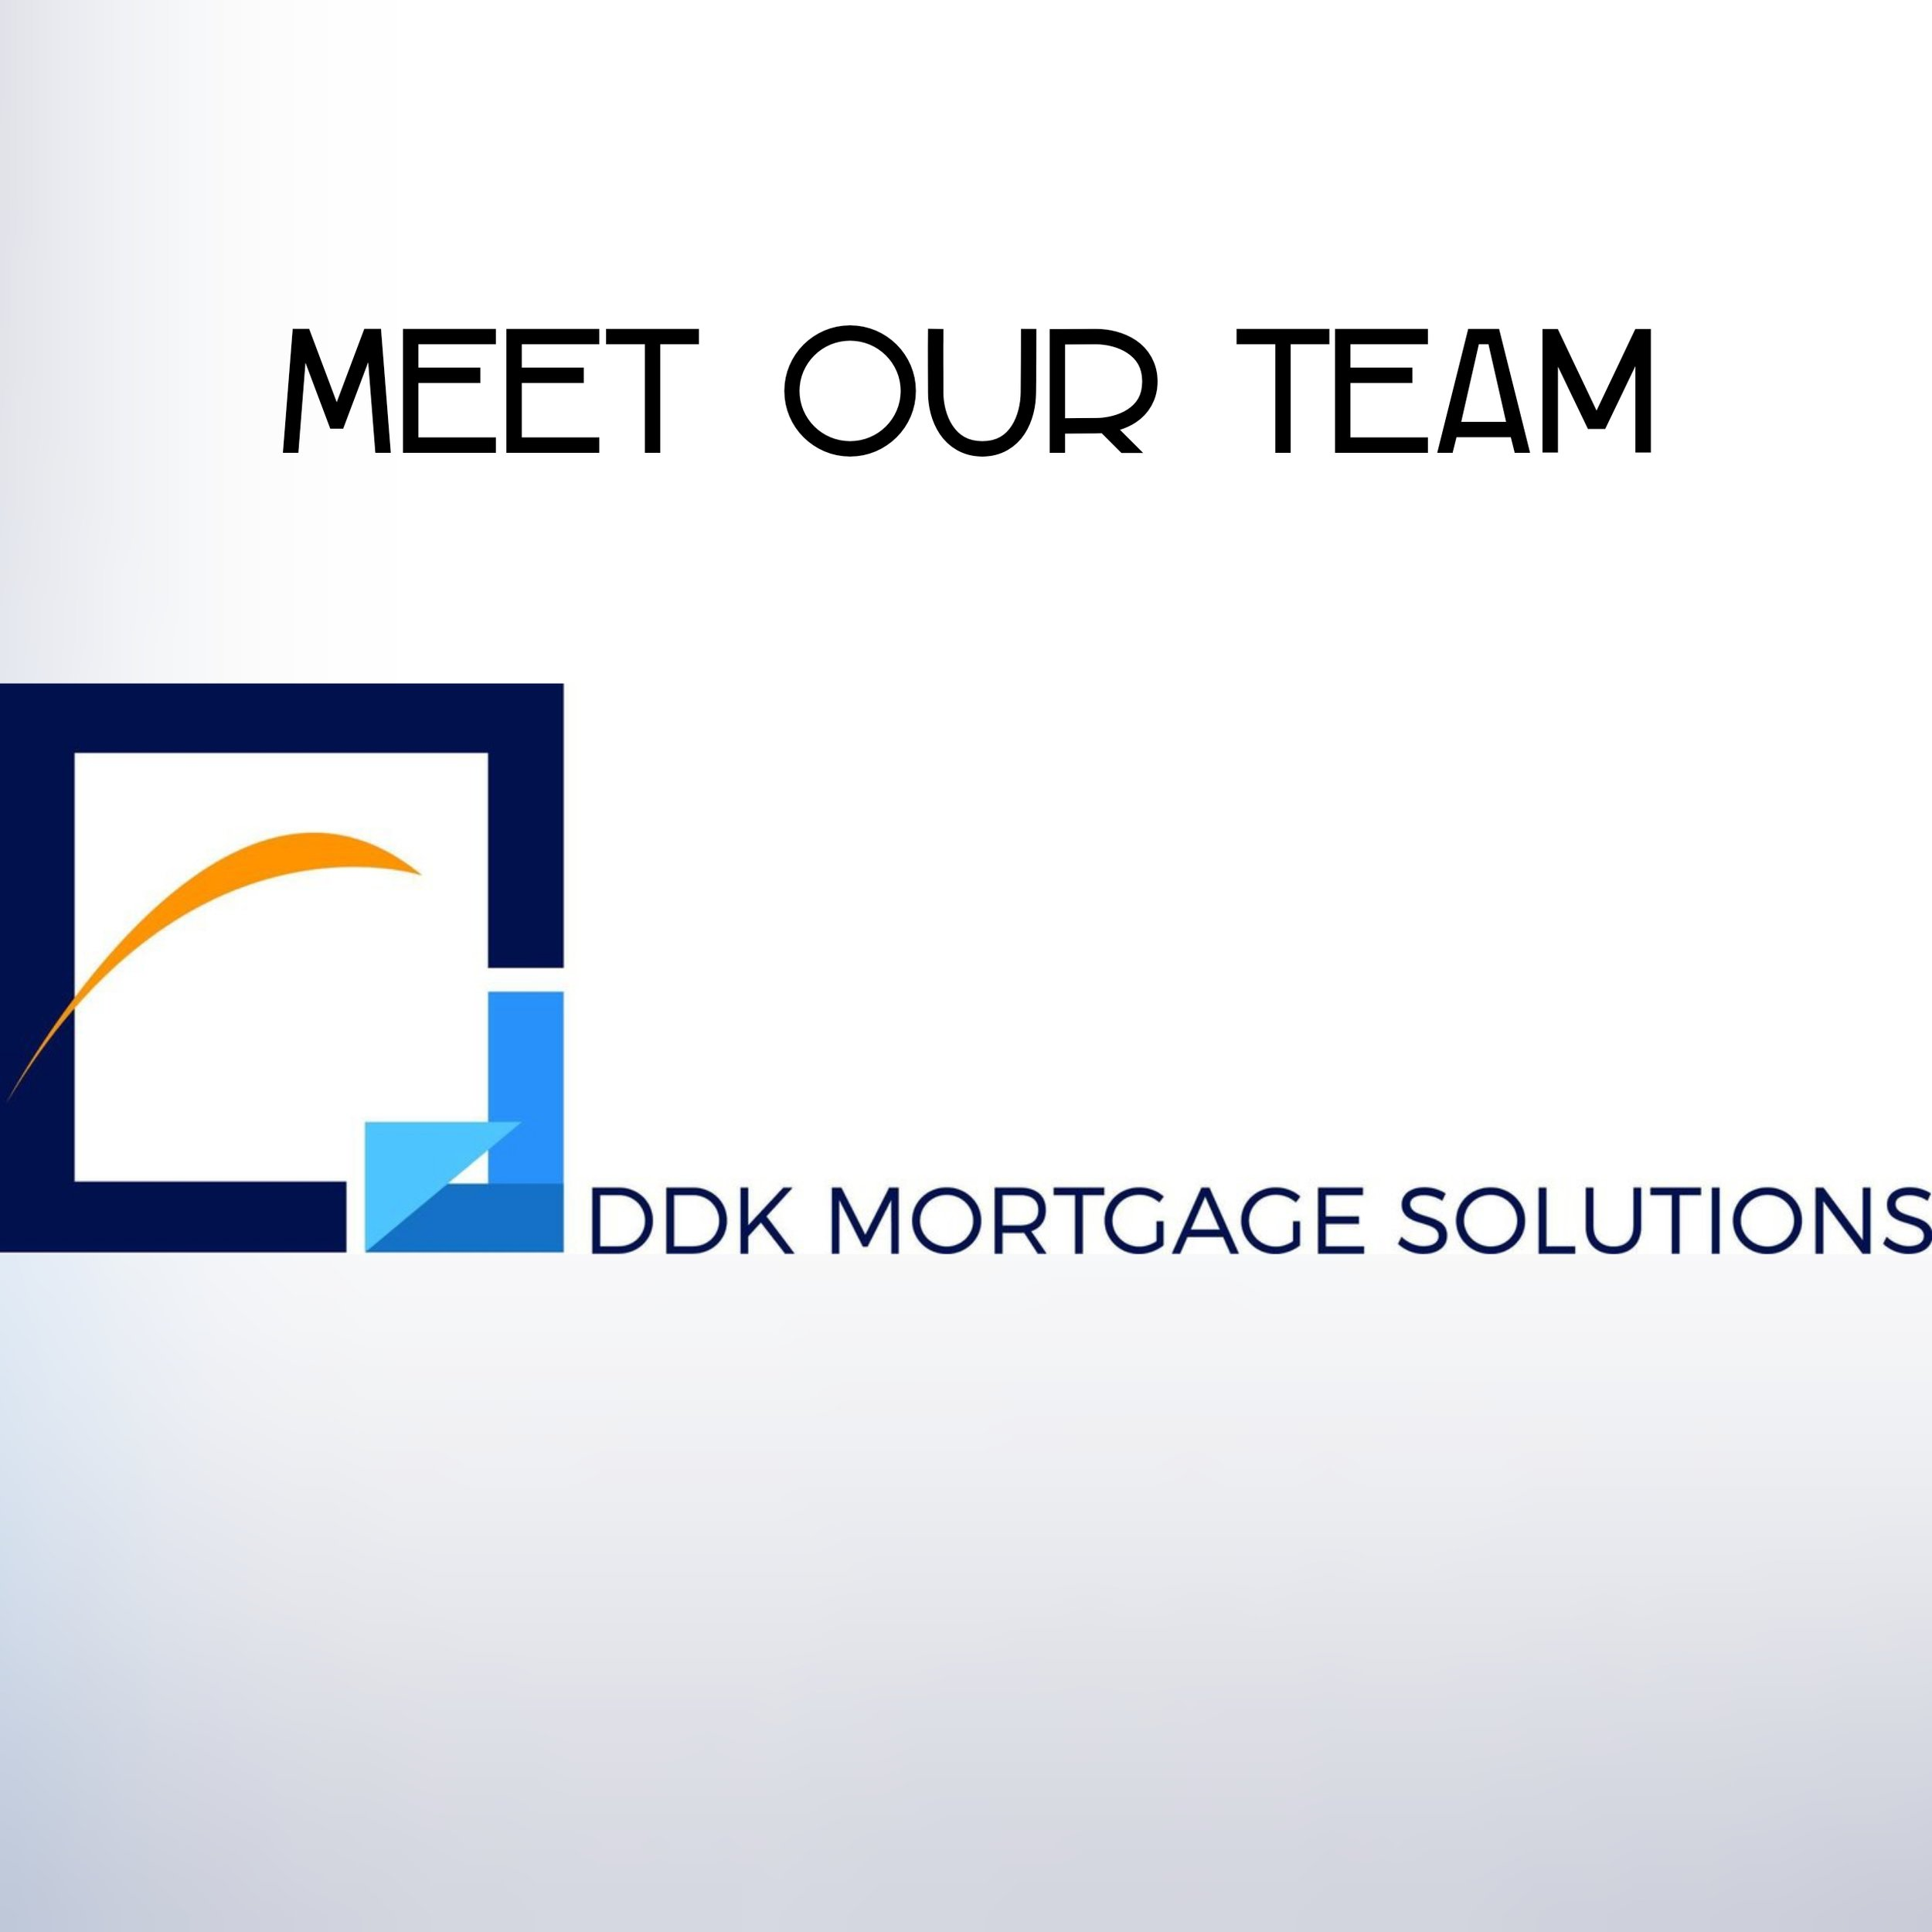 Meet Our Team at DDK Mortgage Solutions. - Jay Kister - CEO/ Broker Centrix USA Direct: 619.892.5170 Fax: 866.572.4737 Jay.Kister@CentrixUSA.comRobert T. Aiello Private Funding Manager 16892 Bolsa Chica, Suite 204 Huntington Beach, Ca 92648Anthony Simich - Athas Capital National Account ExecutiveAdam L. Morris - Director of Business Lending Operations Adam@ddk-ms.com